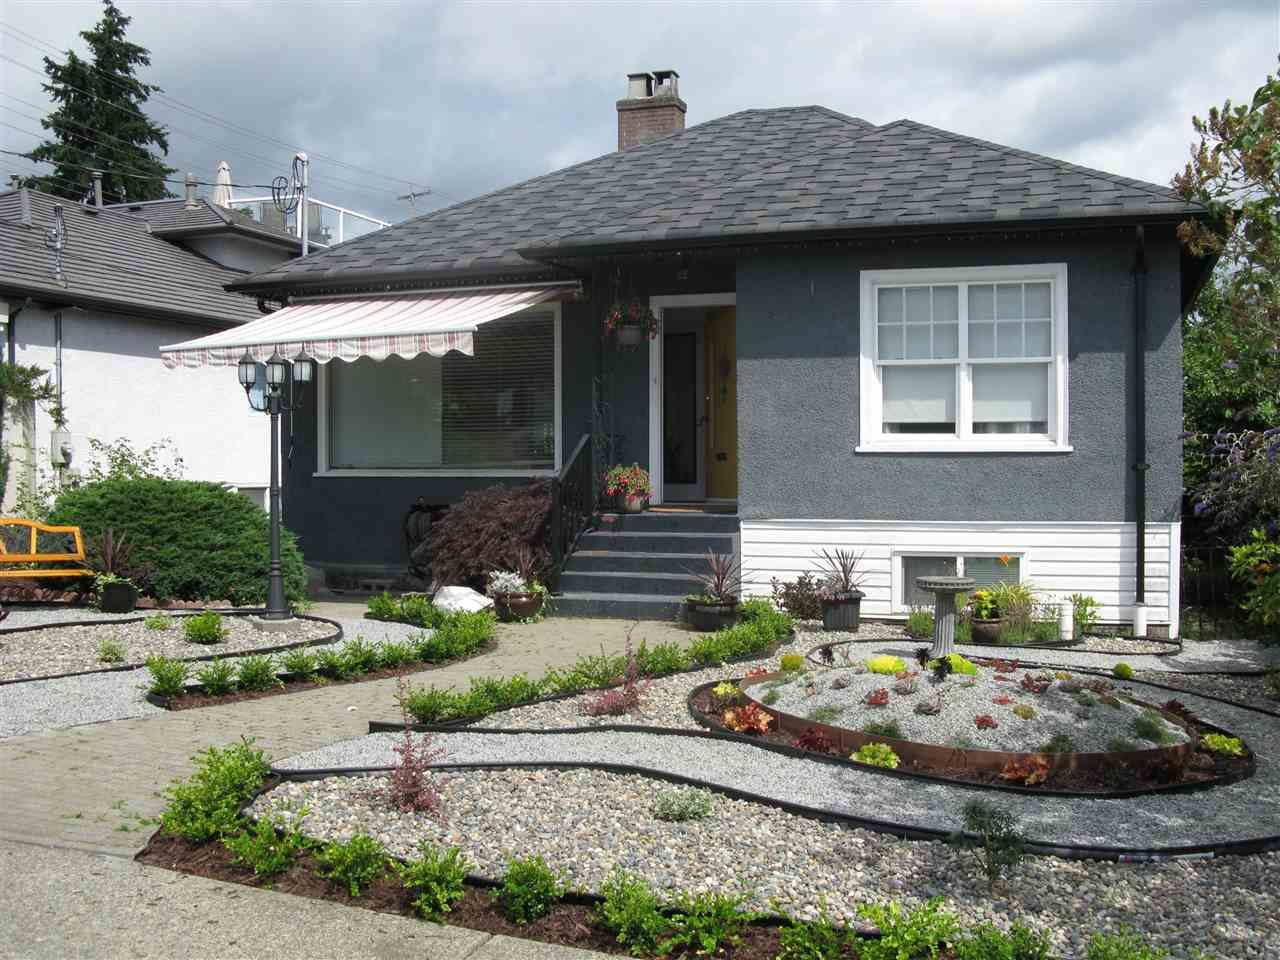 """Main Photo: 377 SIMPSON Street in New Westminster: Sapperton House for sale in """"SAPPERTON"""" : MLS®# R2543534"""